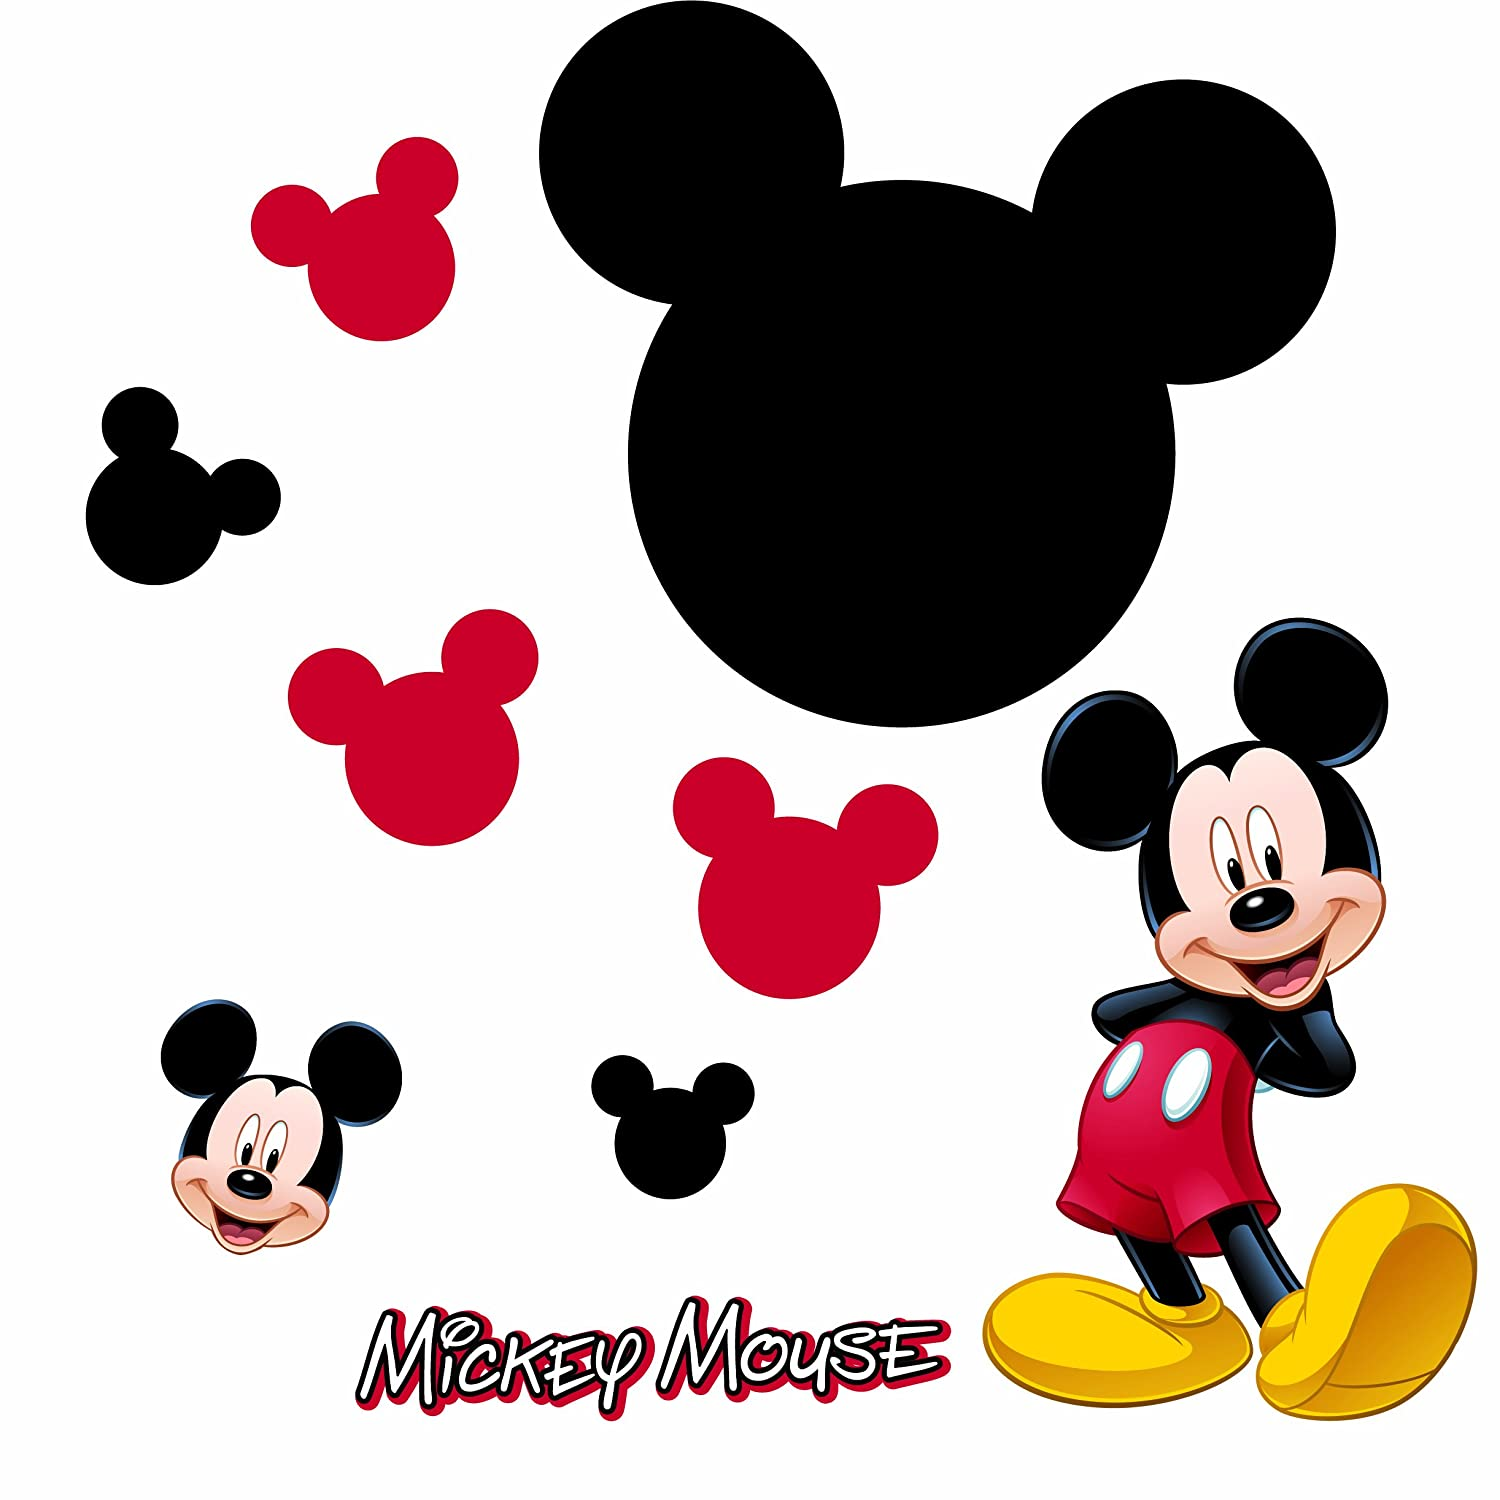 Amazon com  Roommates Rmk1506Gm Mickey Mouse Chalkboard Peel   Stick Wall  Decal  Home Improvement. Amazon com  Roommates Rmk1506Gm Mickey Mouse Chalkboard Peel